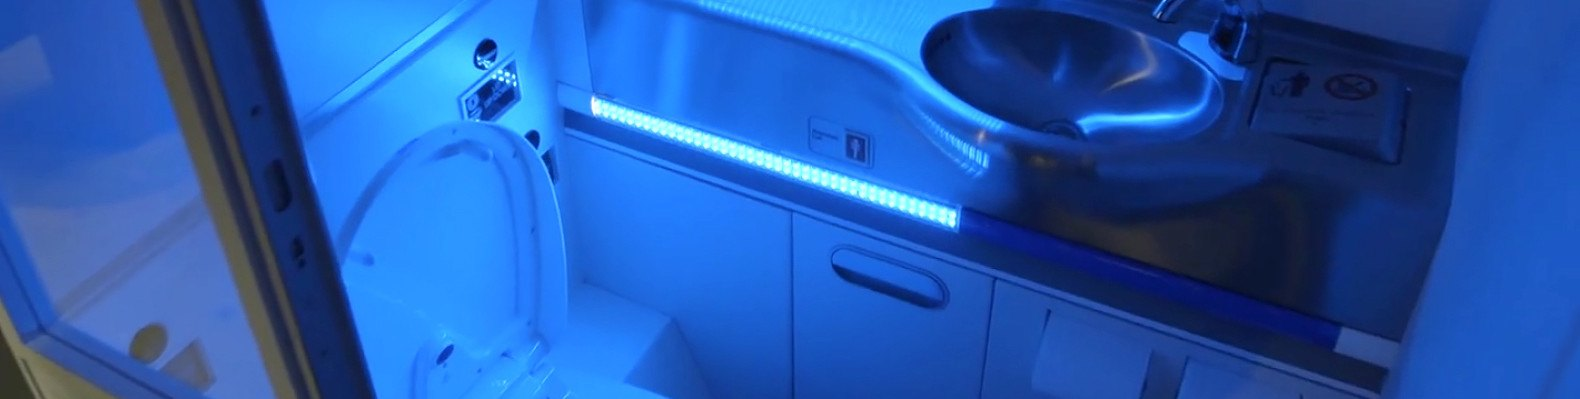 Boeingu0027s New Self Cleaning Airplane Bathroom Annihilates Microbes With UV  Light | Inhabitat   Green Design, Innovation, Architecture, Green Building